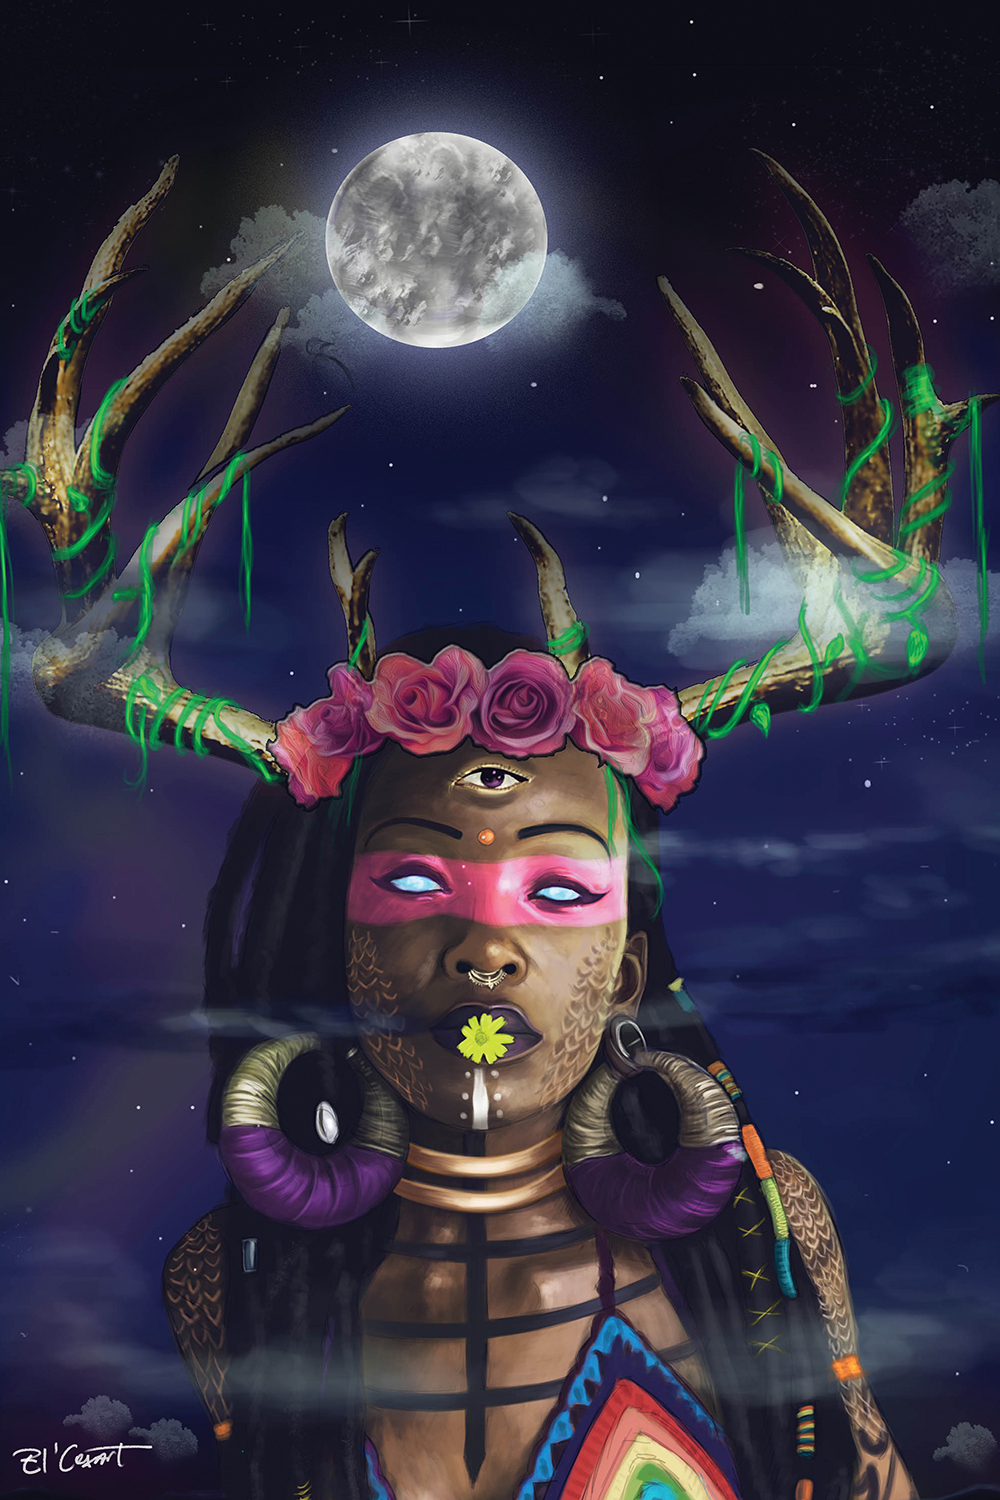 woman with antlers and third eye wearing crown of roses, giant earrings, and rainbow top with full moon in view